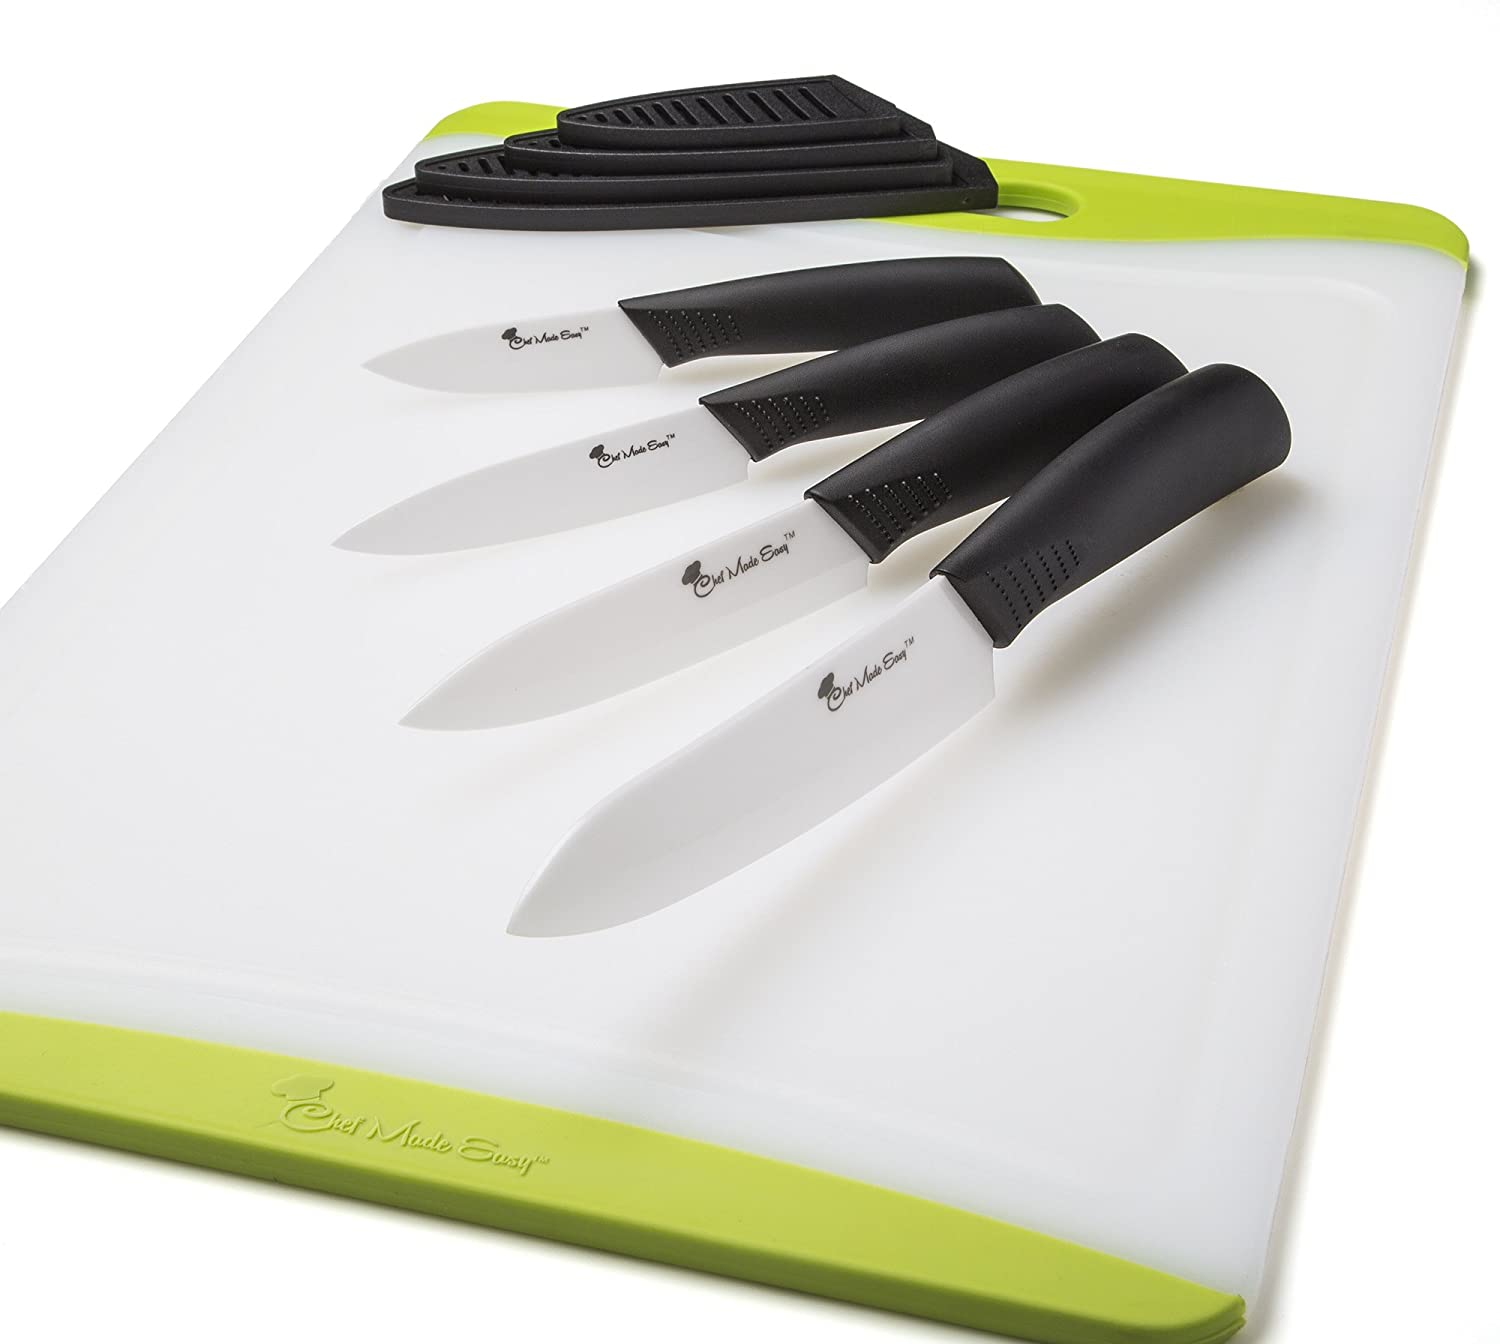 ceramic blade chefs knife set kitchen knives with case